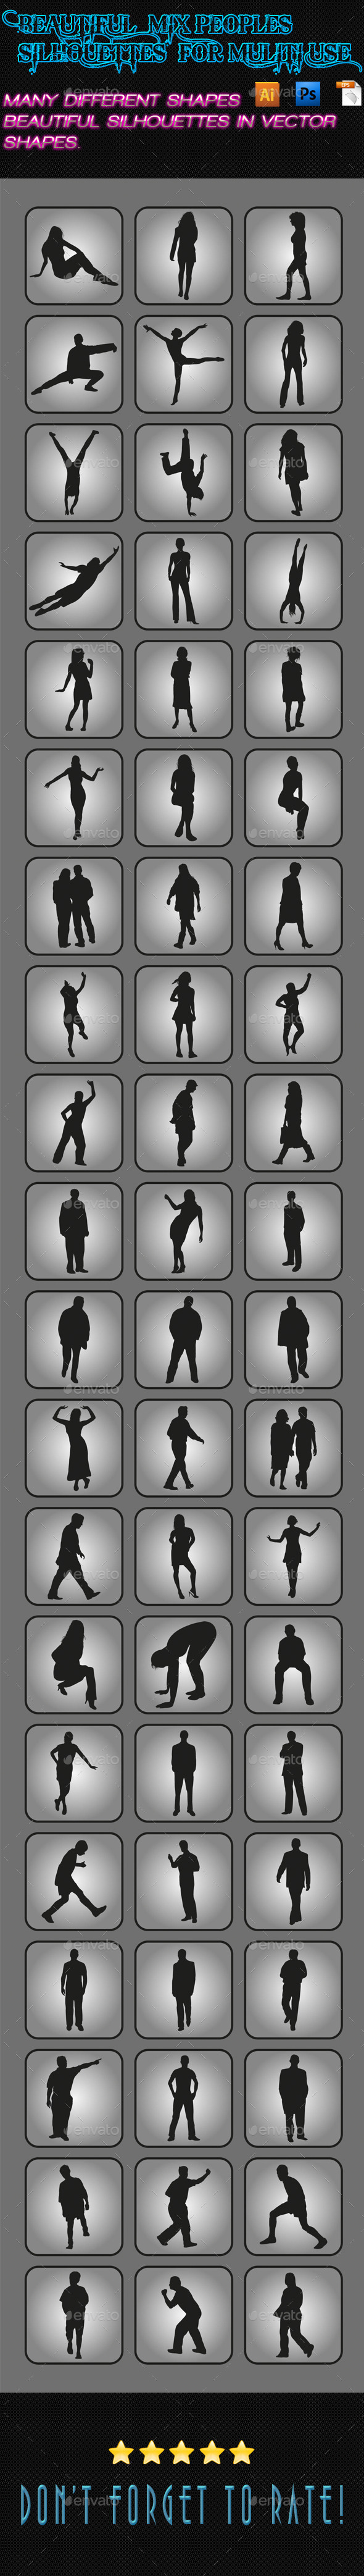 GraphicRiver Mix Peoples Silhouettes 02 9908023